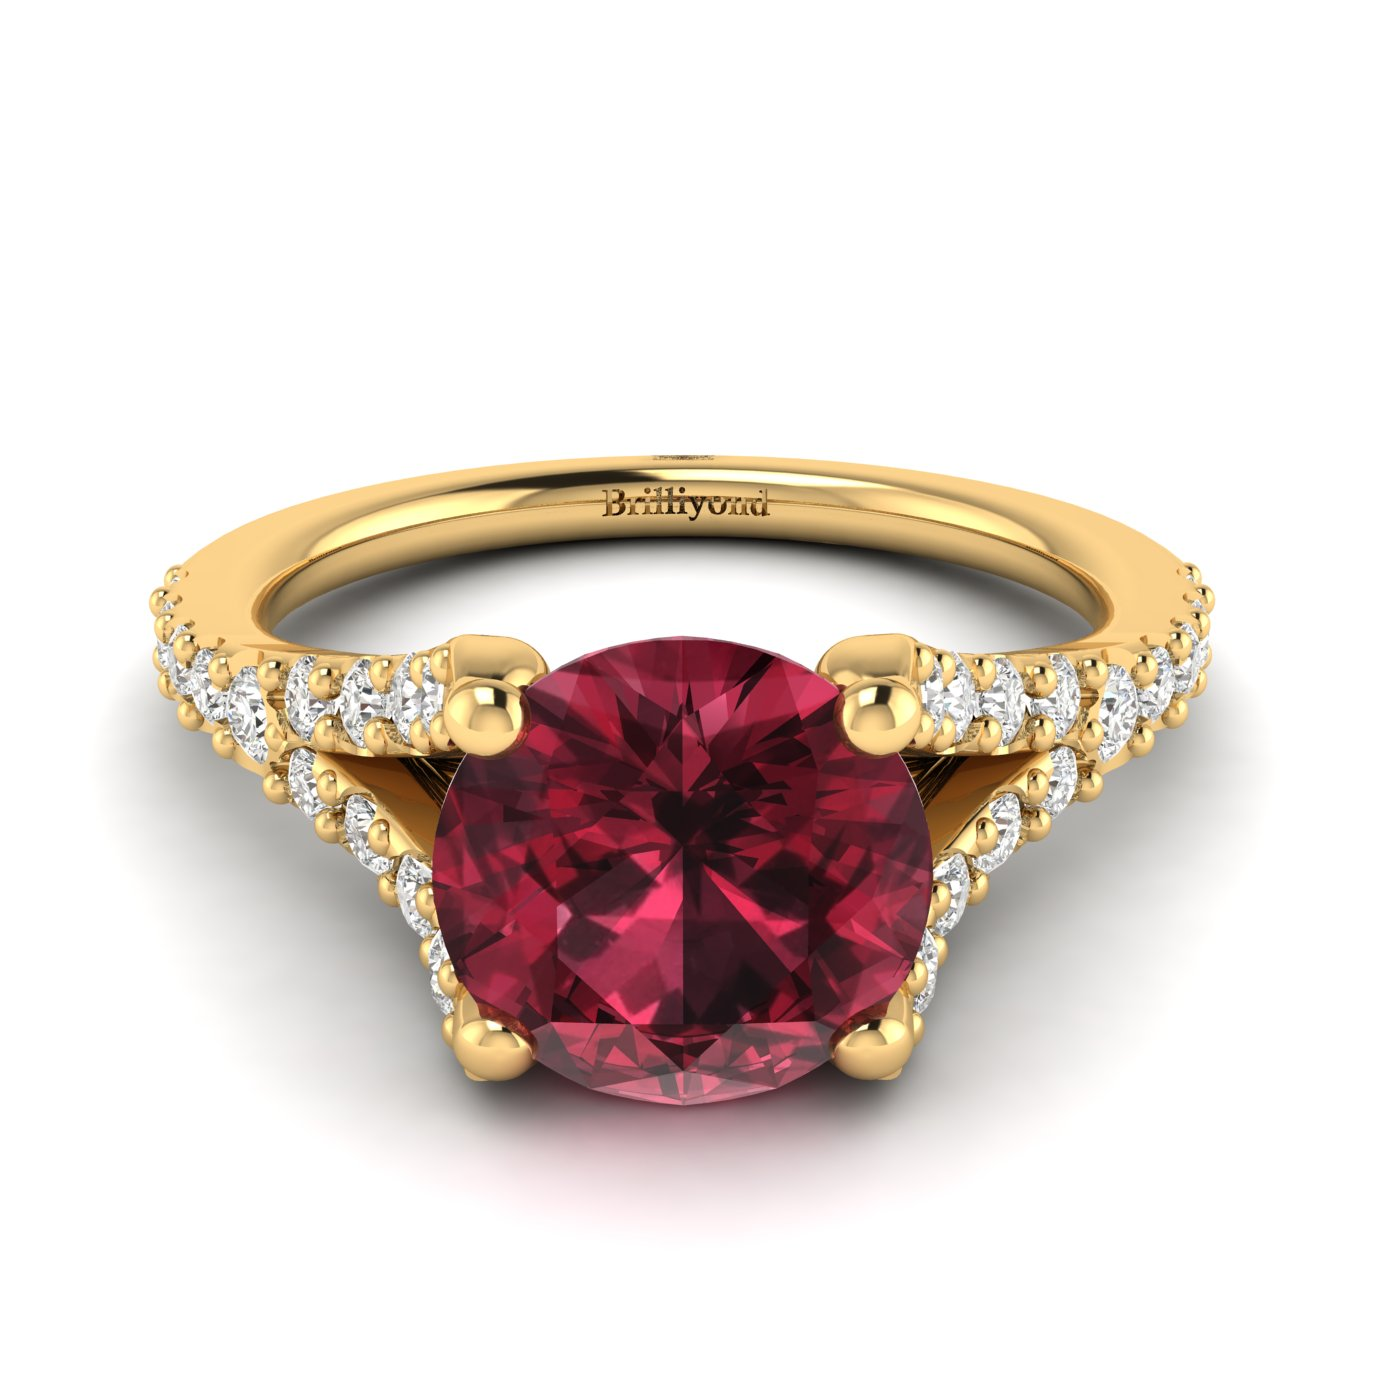 This Juliana inspired engagement ring features a round cut 6mm red garnet centre stone.